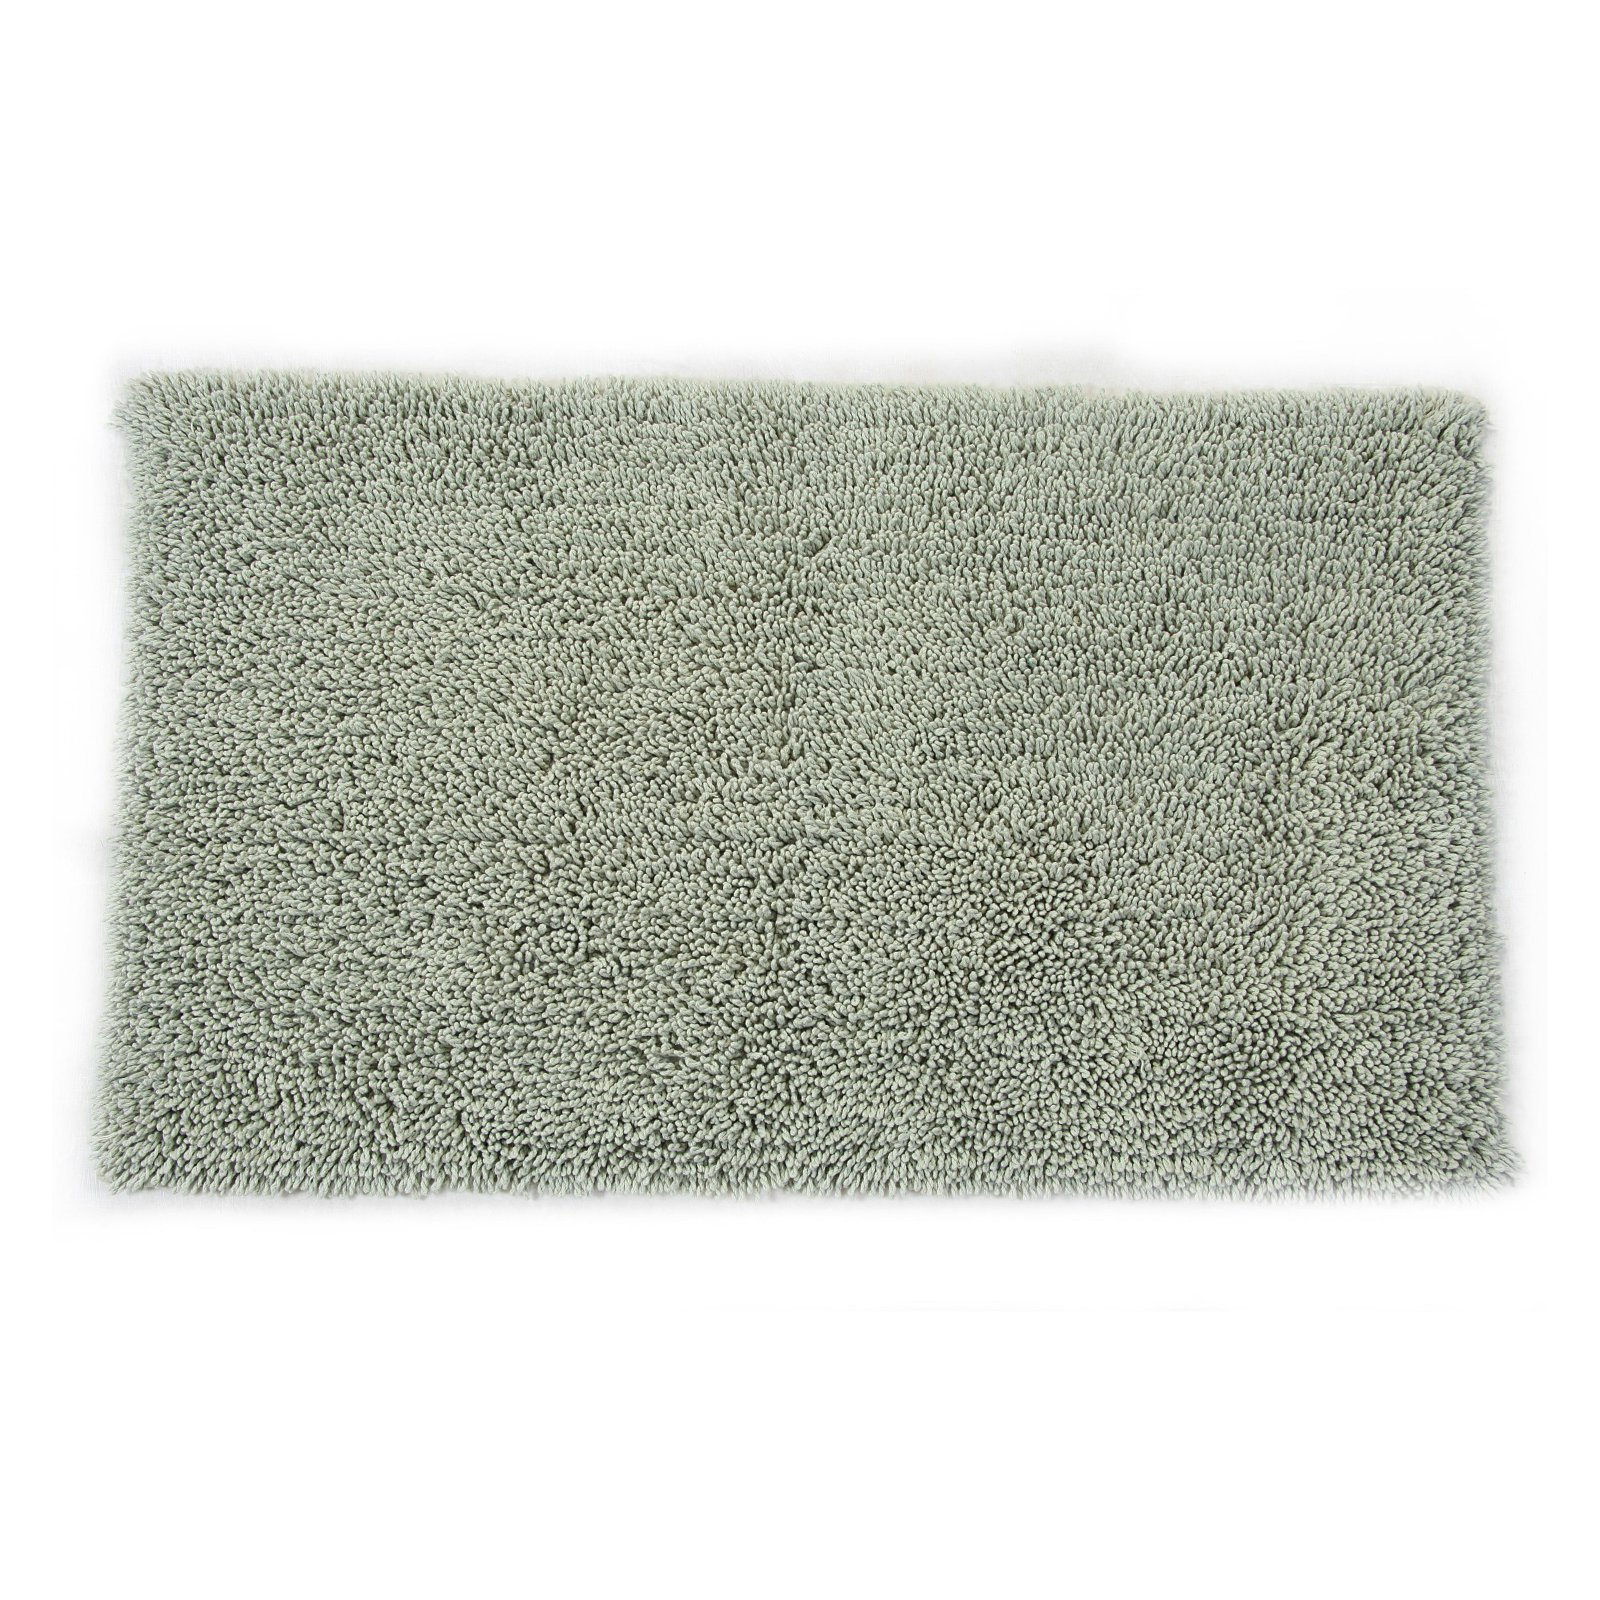 Elegance Collection Melborne Bath Rug